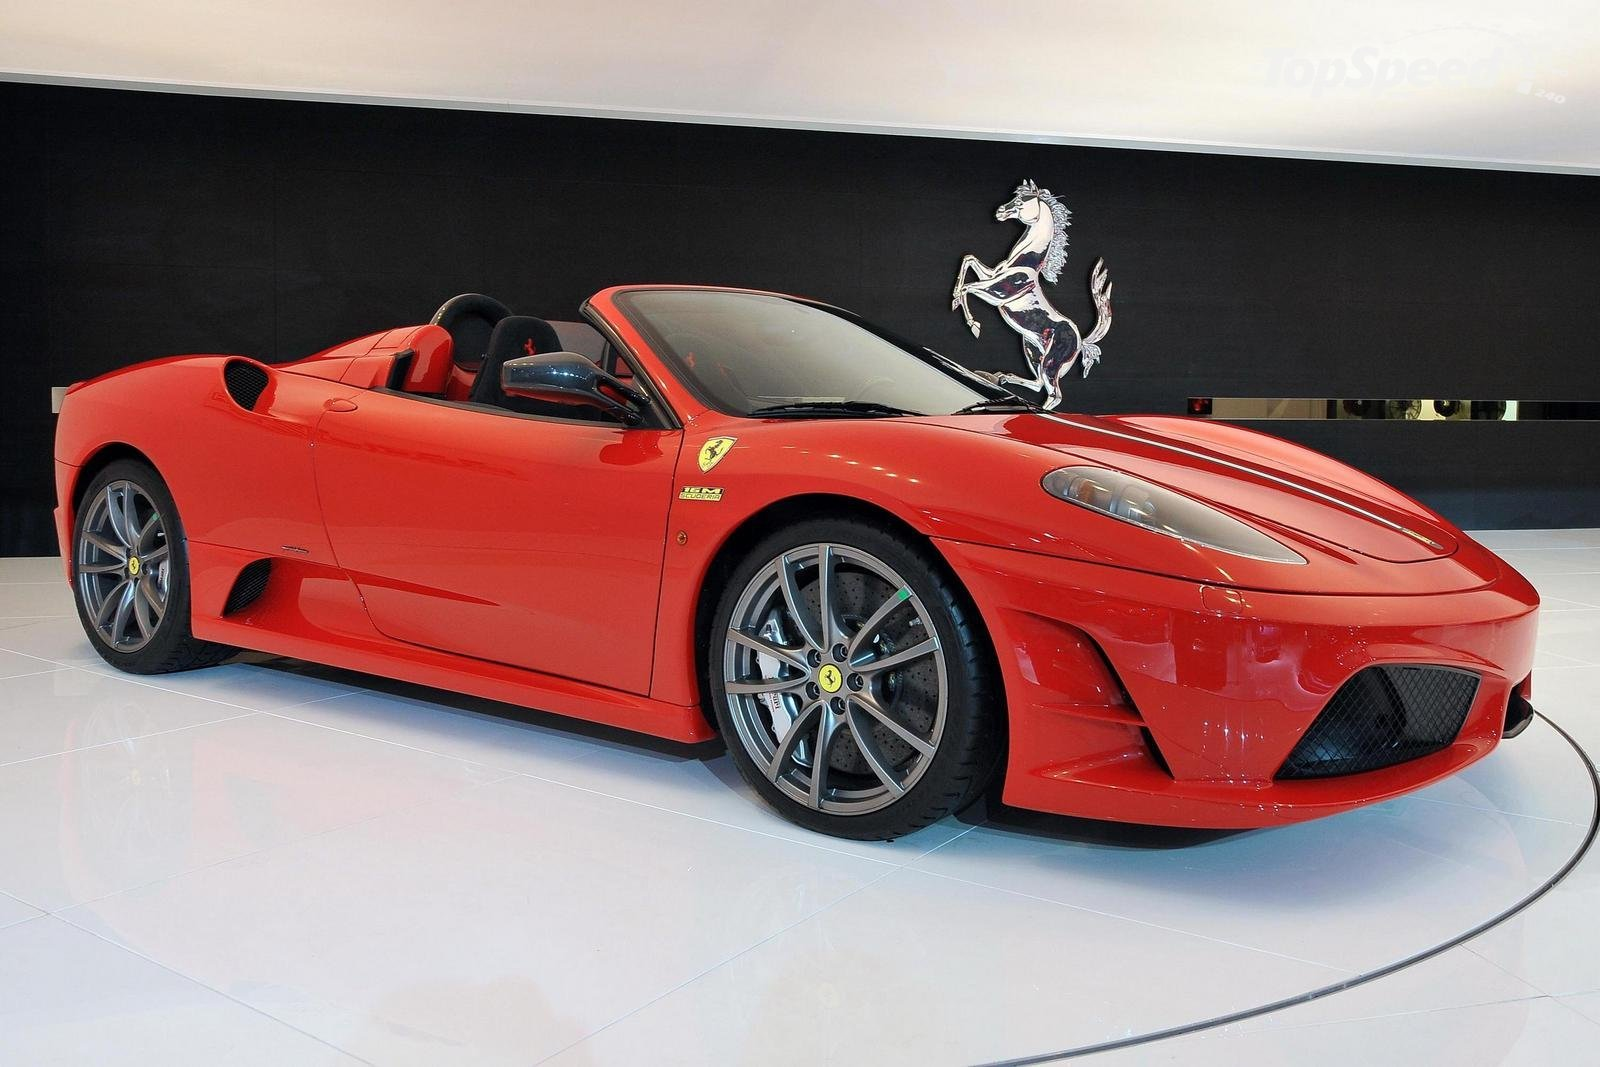 Best Cheap Sports Cars Insured By Laura - Top ten affordable sports cars